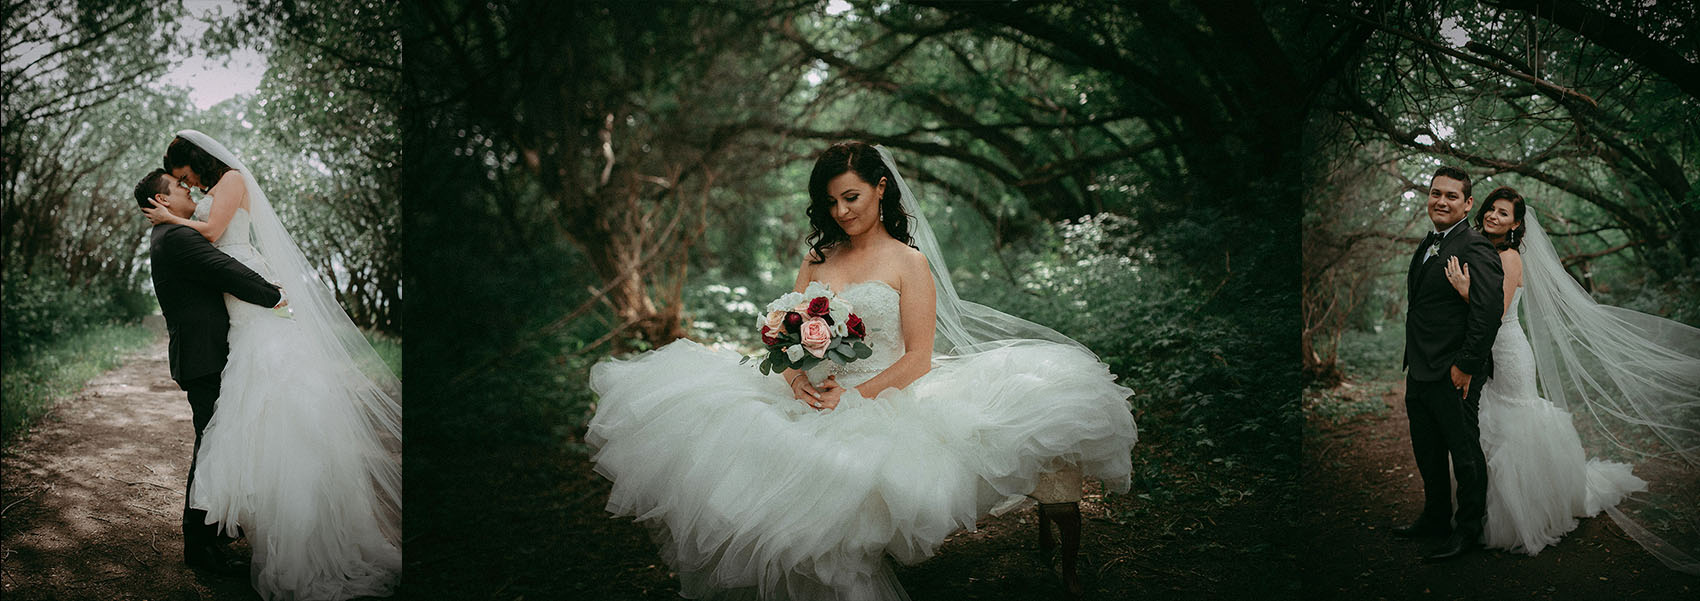 Real wedding day photo galleries. All taken the same day of the wedding.